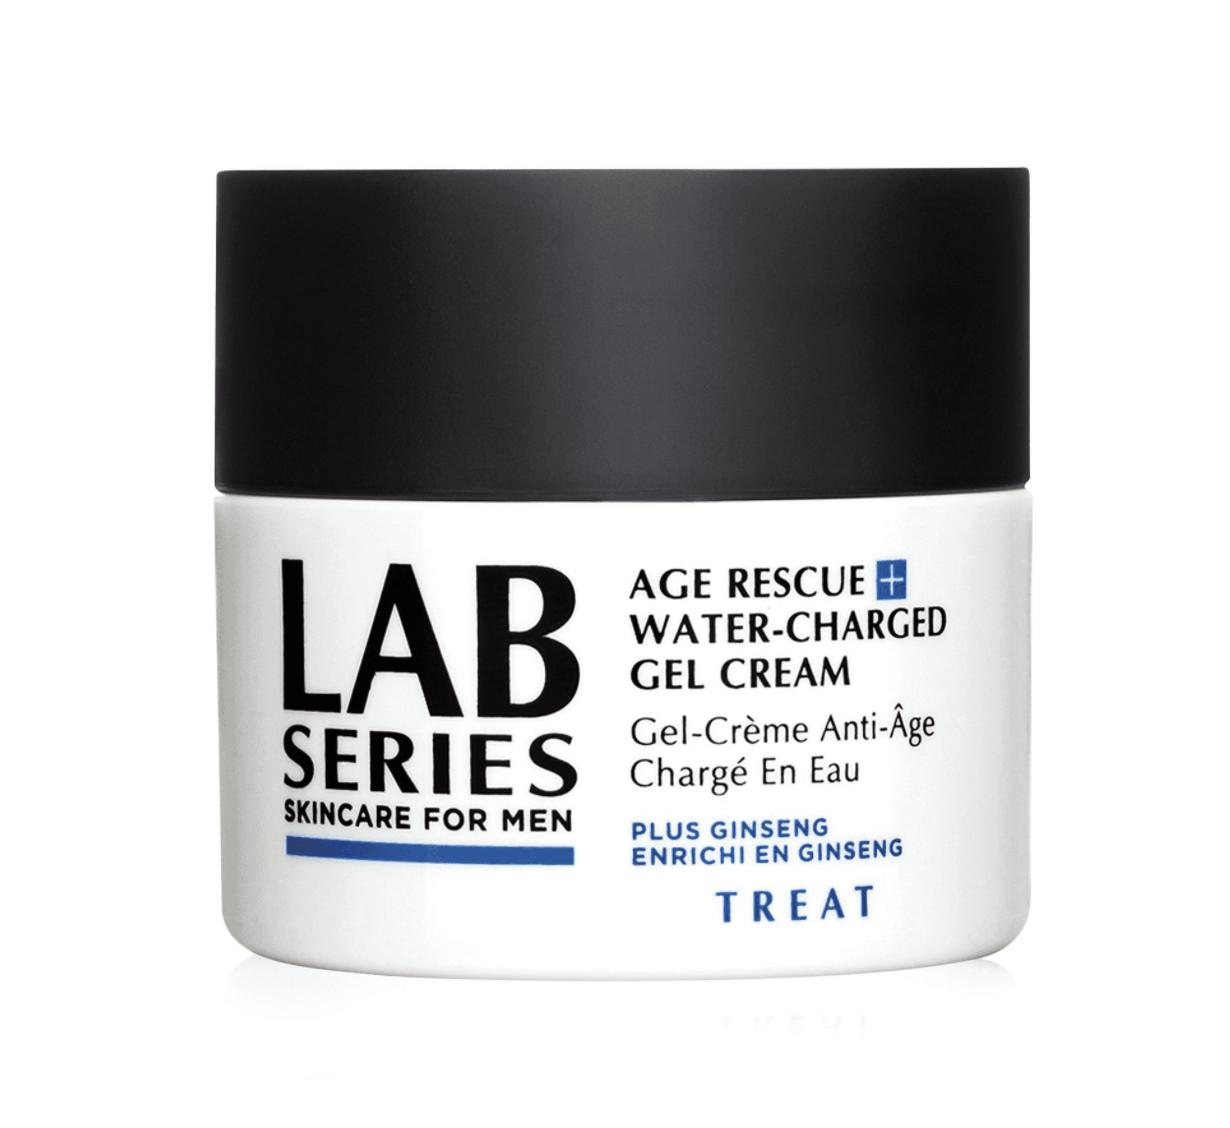 LAB SERIES Age Rescue Water-Charged Gel Cream Mini